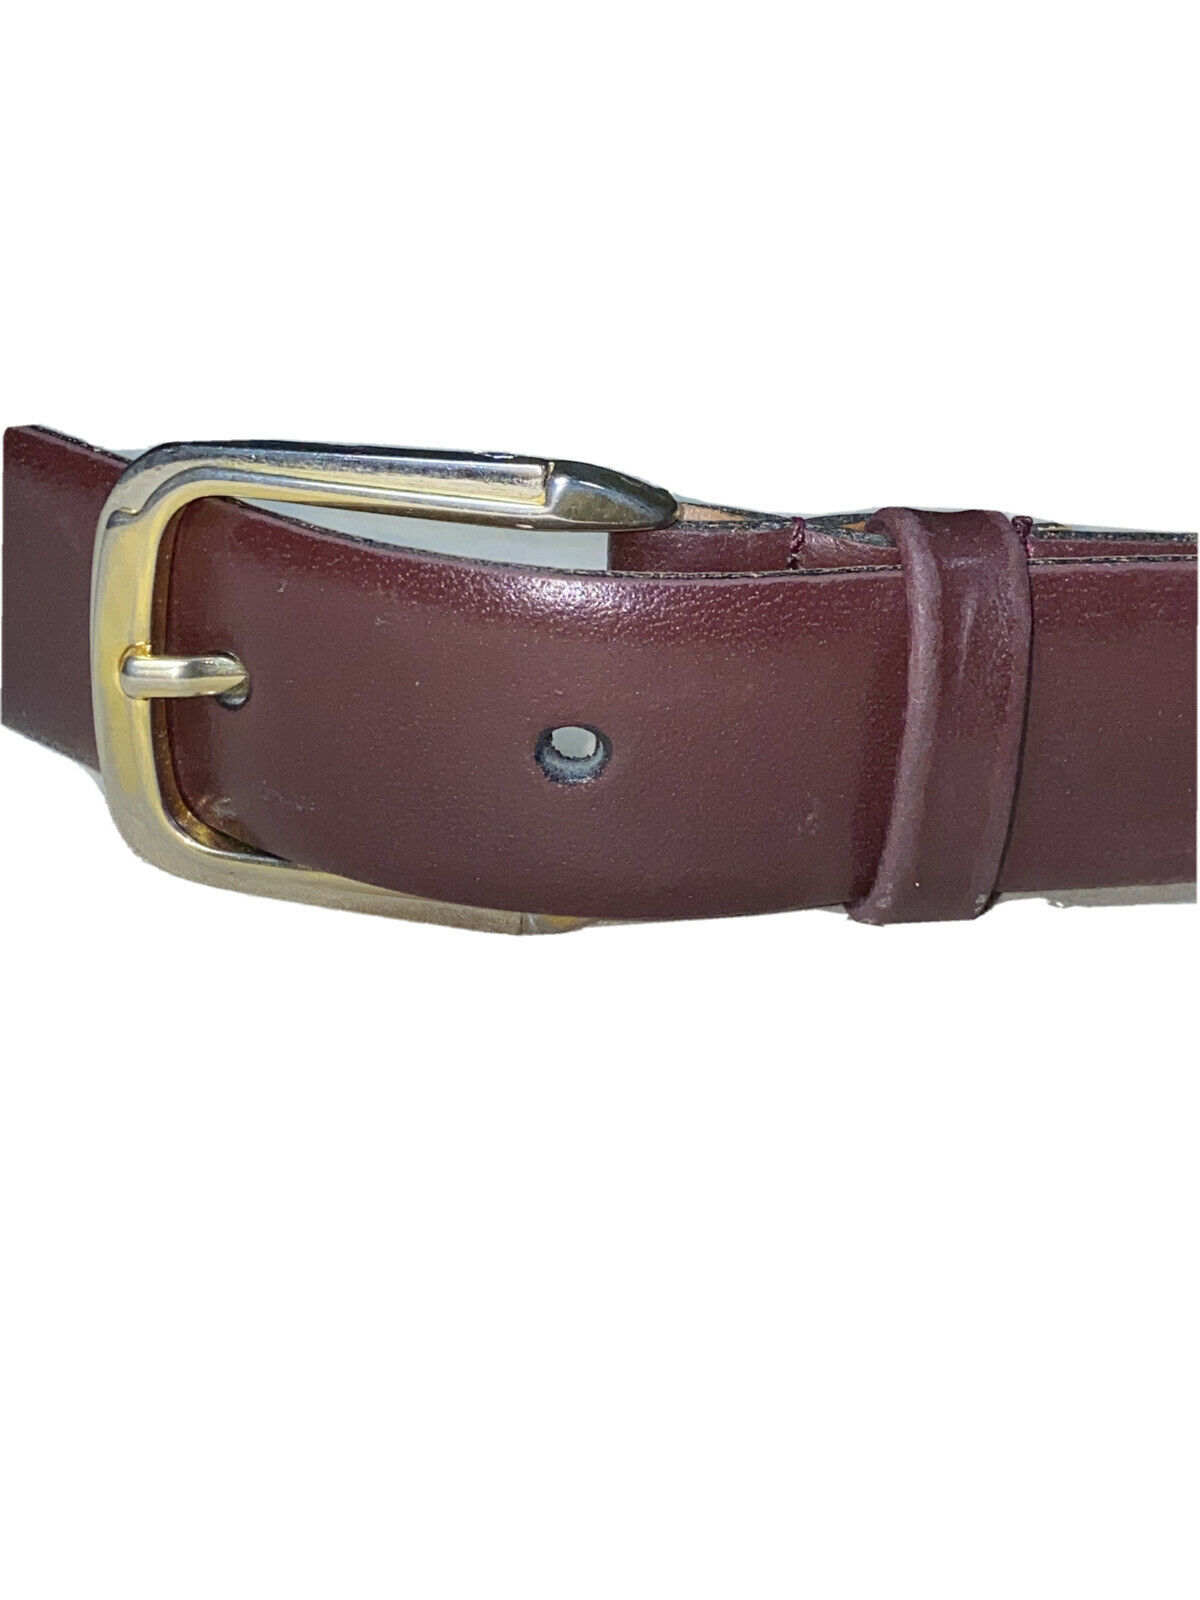 Christian Dior Made In Spain Split Leather Brown Belt Size 80/32